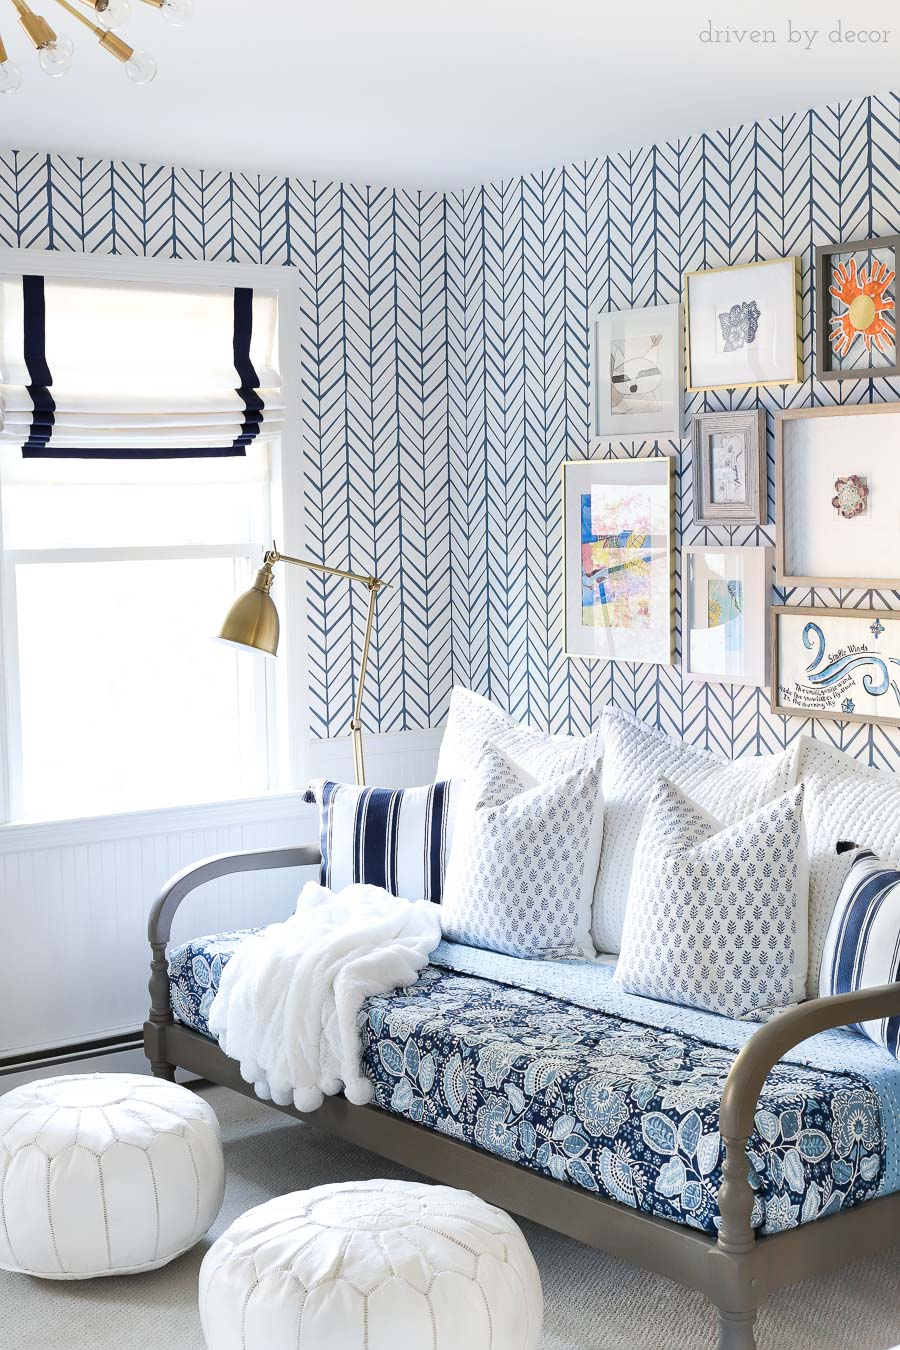 Blue and white bonus room area with daybed, blue floral quilt, blue and white pillows, white leather Moroccan poufs, Roman shades, and an art gallery wall!